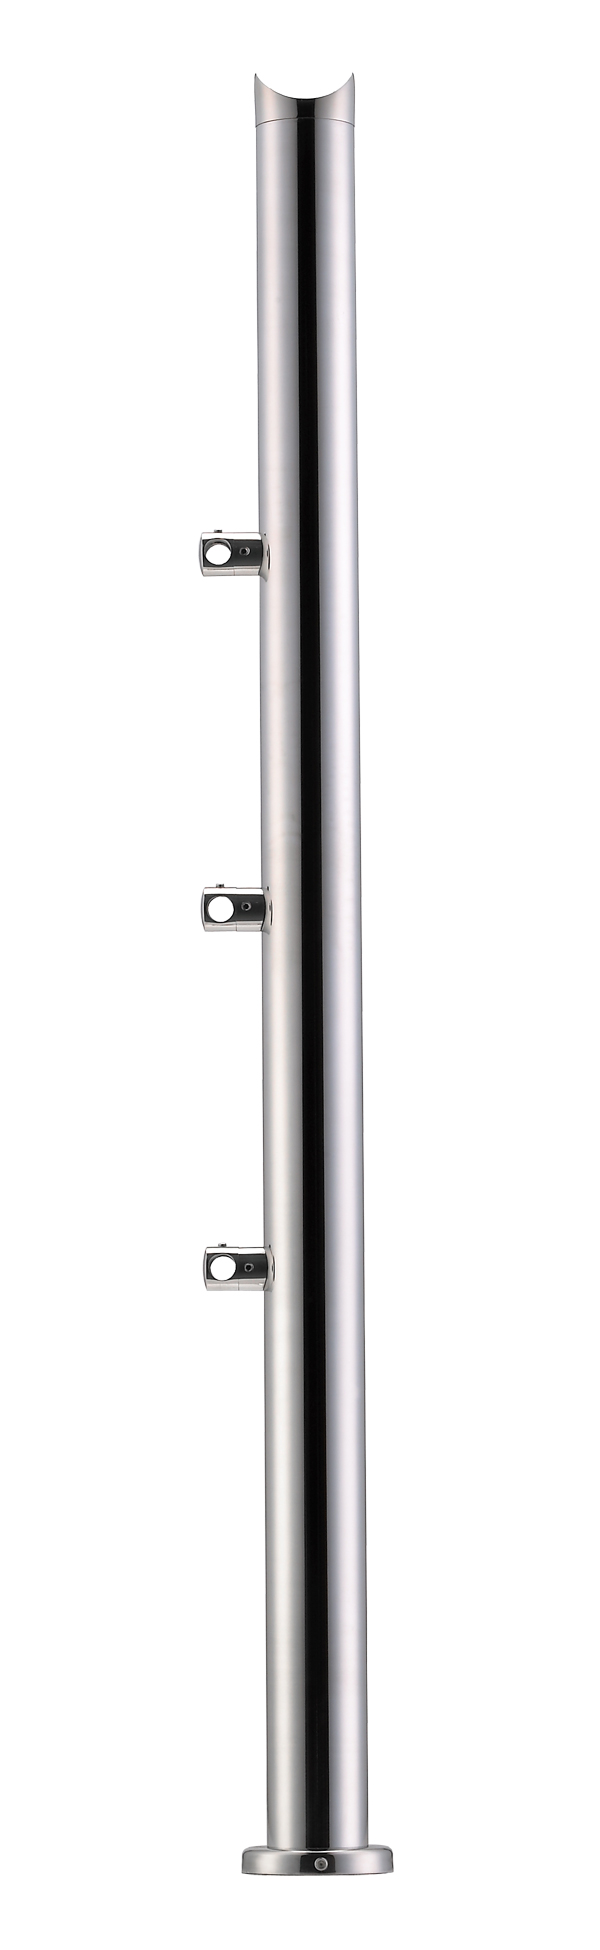 Stainless Steel Balustrade Posts - Tubular - SS:2020378A